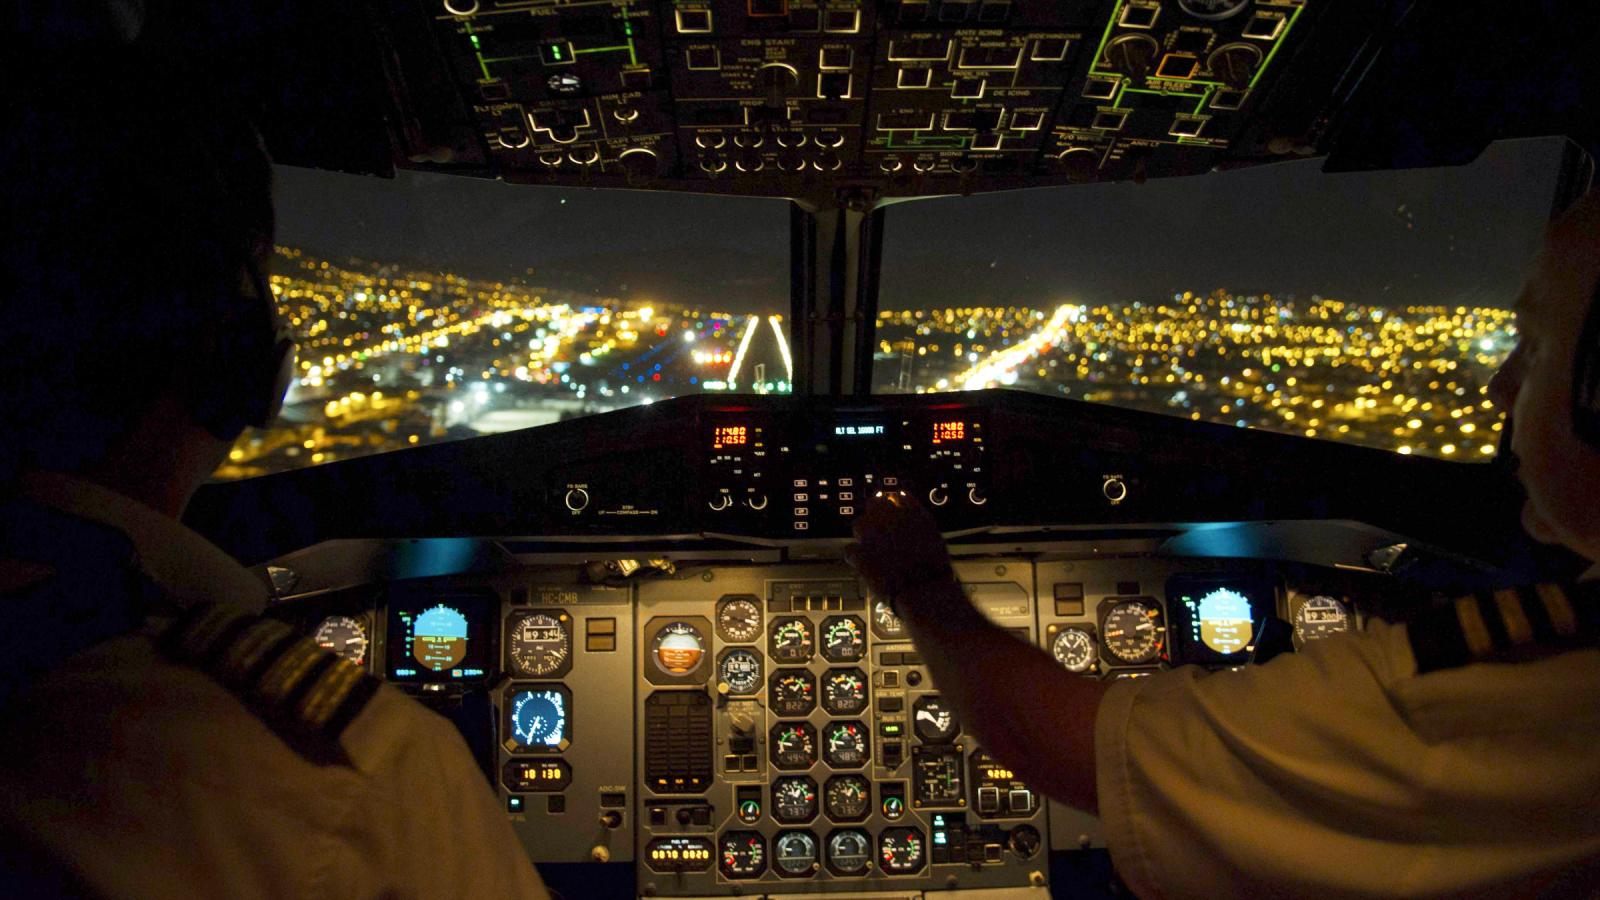 Laser Pointer Attacks On Airplane Pilots Have Jumped 1100 Since Theus Green 2005 Quartz